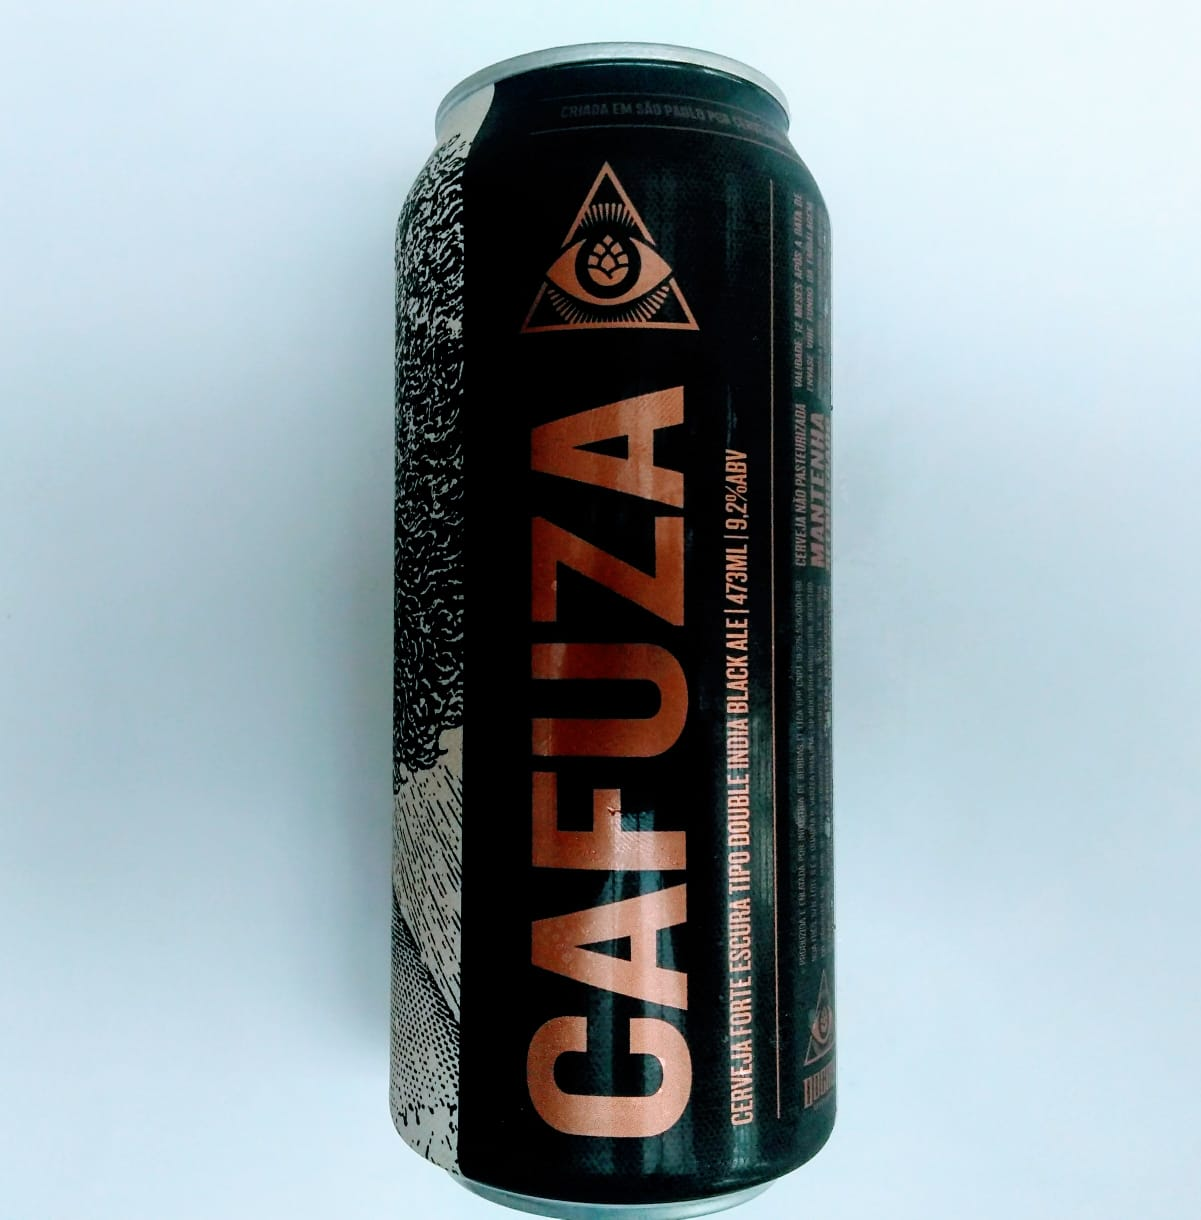 Dogma Cafuza Lata  473ml Black IPA